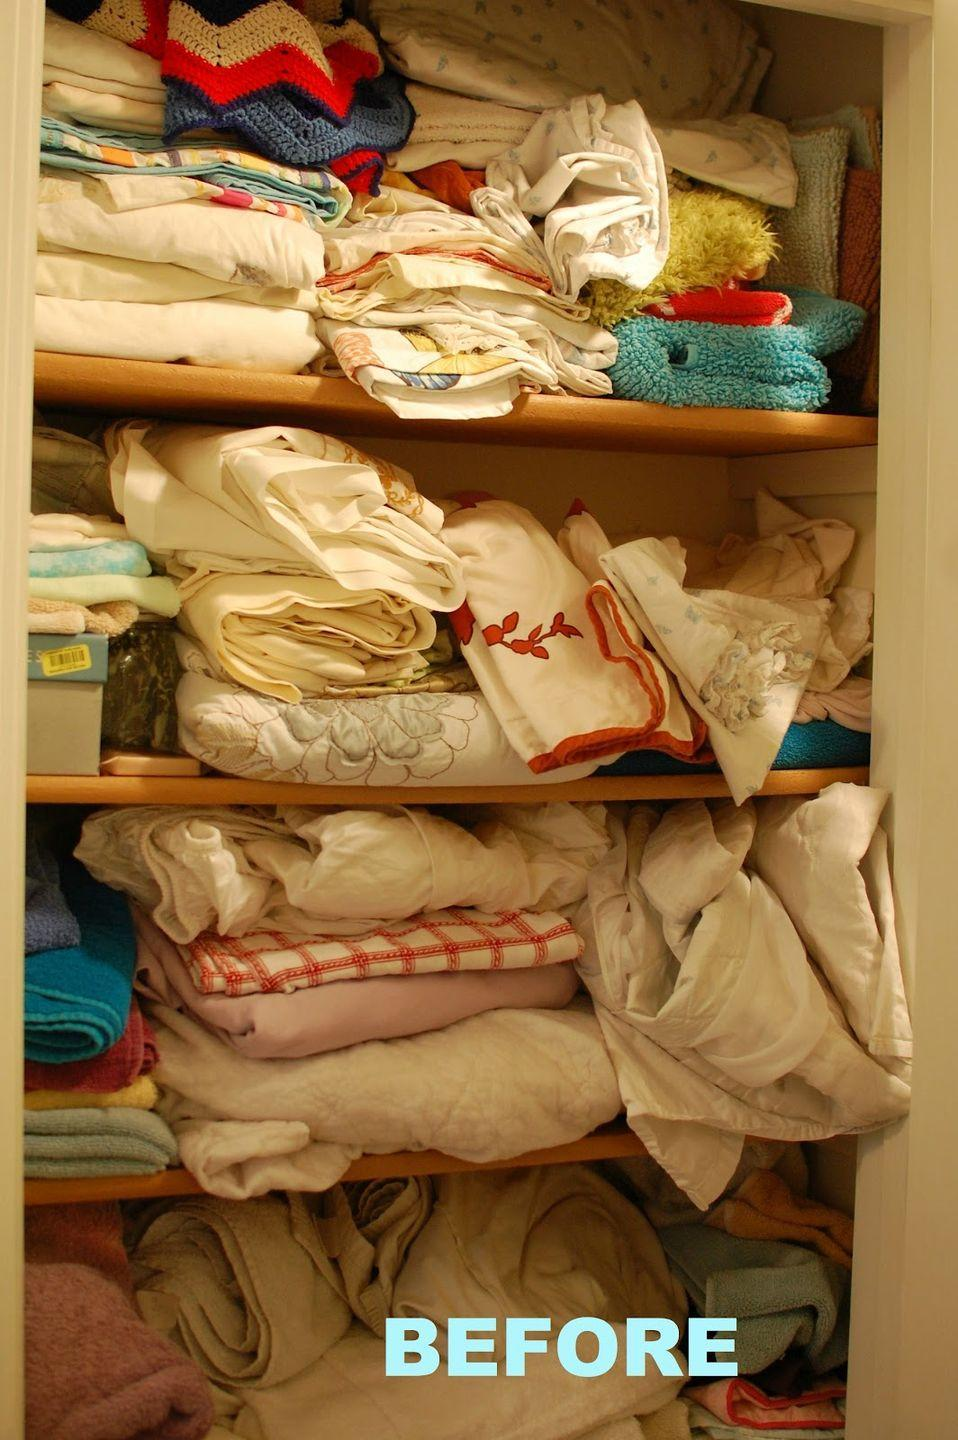 """<p>Nothing's more frustrating than grabbing a twin sheet set for your queen bed. If you stack all of <a href=""""http://abirdandabean.com/2012/03/10-linen-closet-redo.html"""" rel=""""nofollow noopener"""" target=""""_blank"""" data-ylk=""""slk:your linens"""" class=""""link rapid-noclick-resp"""">your linens</a> together that's bound to happen on a regular basis.</p>"""